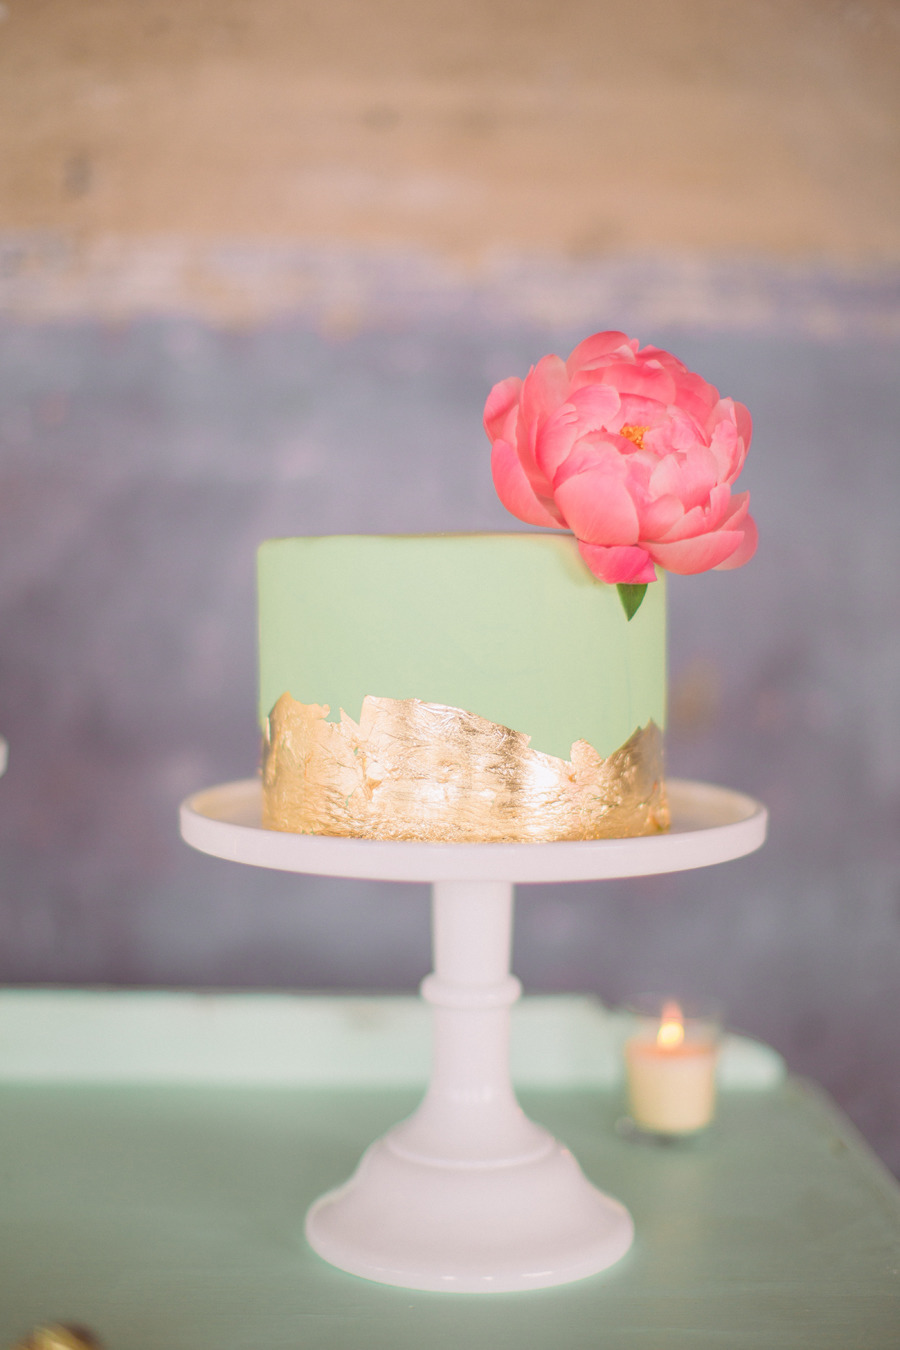 Flowers on Cakes – A Trend Report and a Creative Challenge